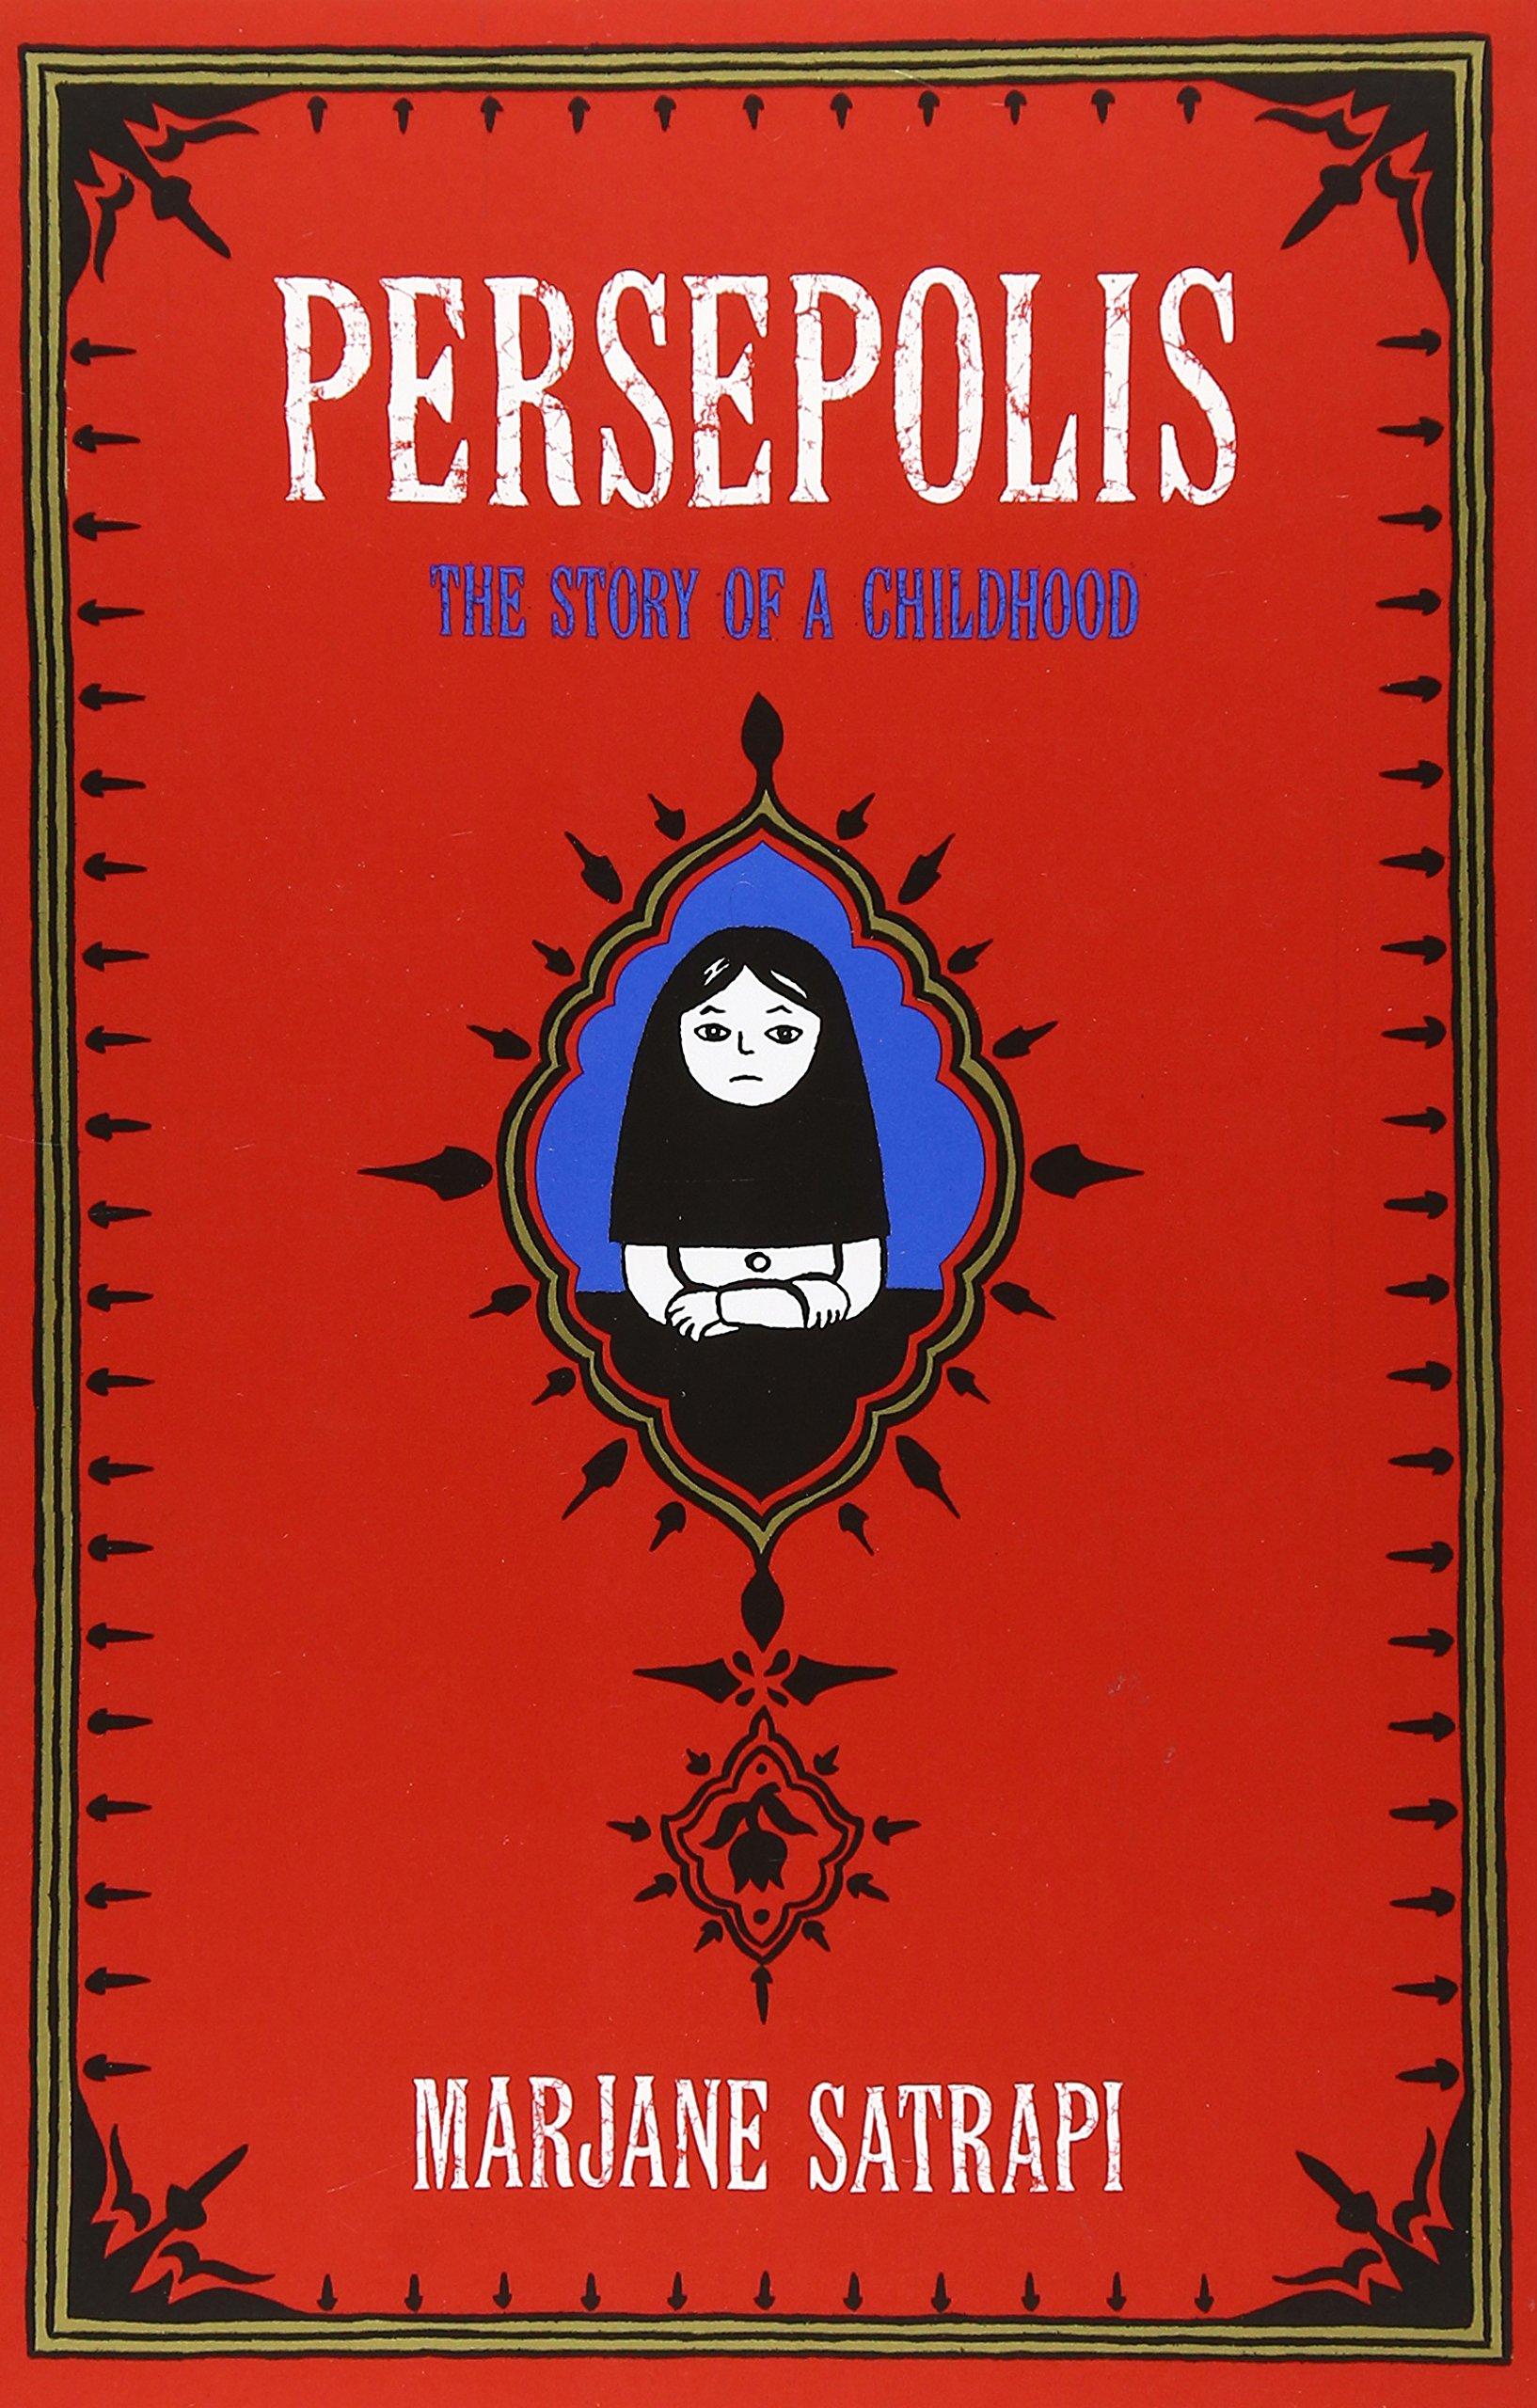 Persepolis: The Story of a Childhood ISBN-13 9780375714573